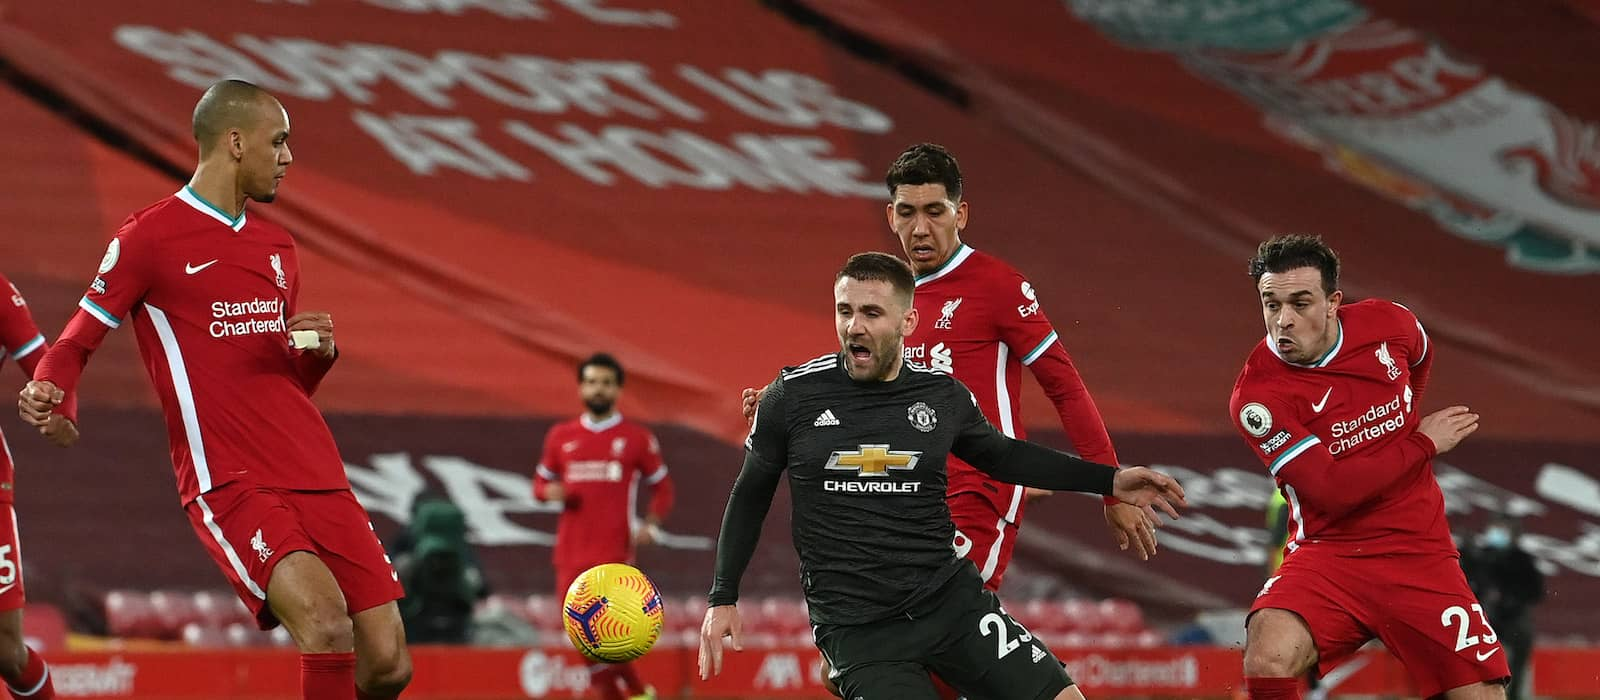 Manchester United fans react to Luke Shaw's performance vs Liverpool